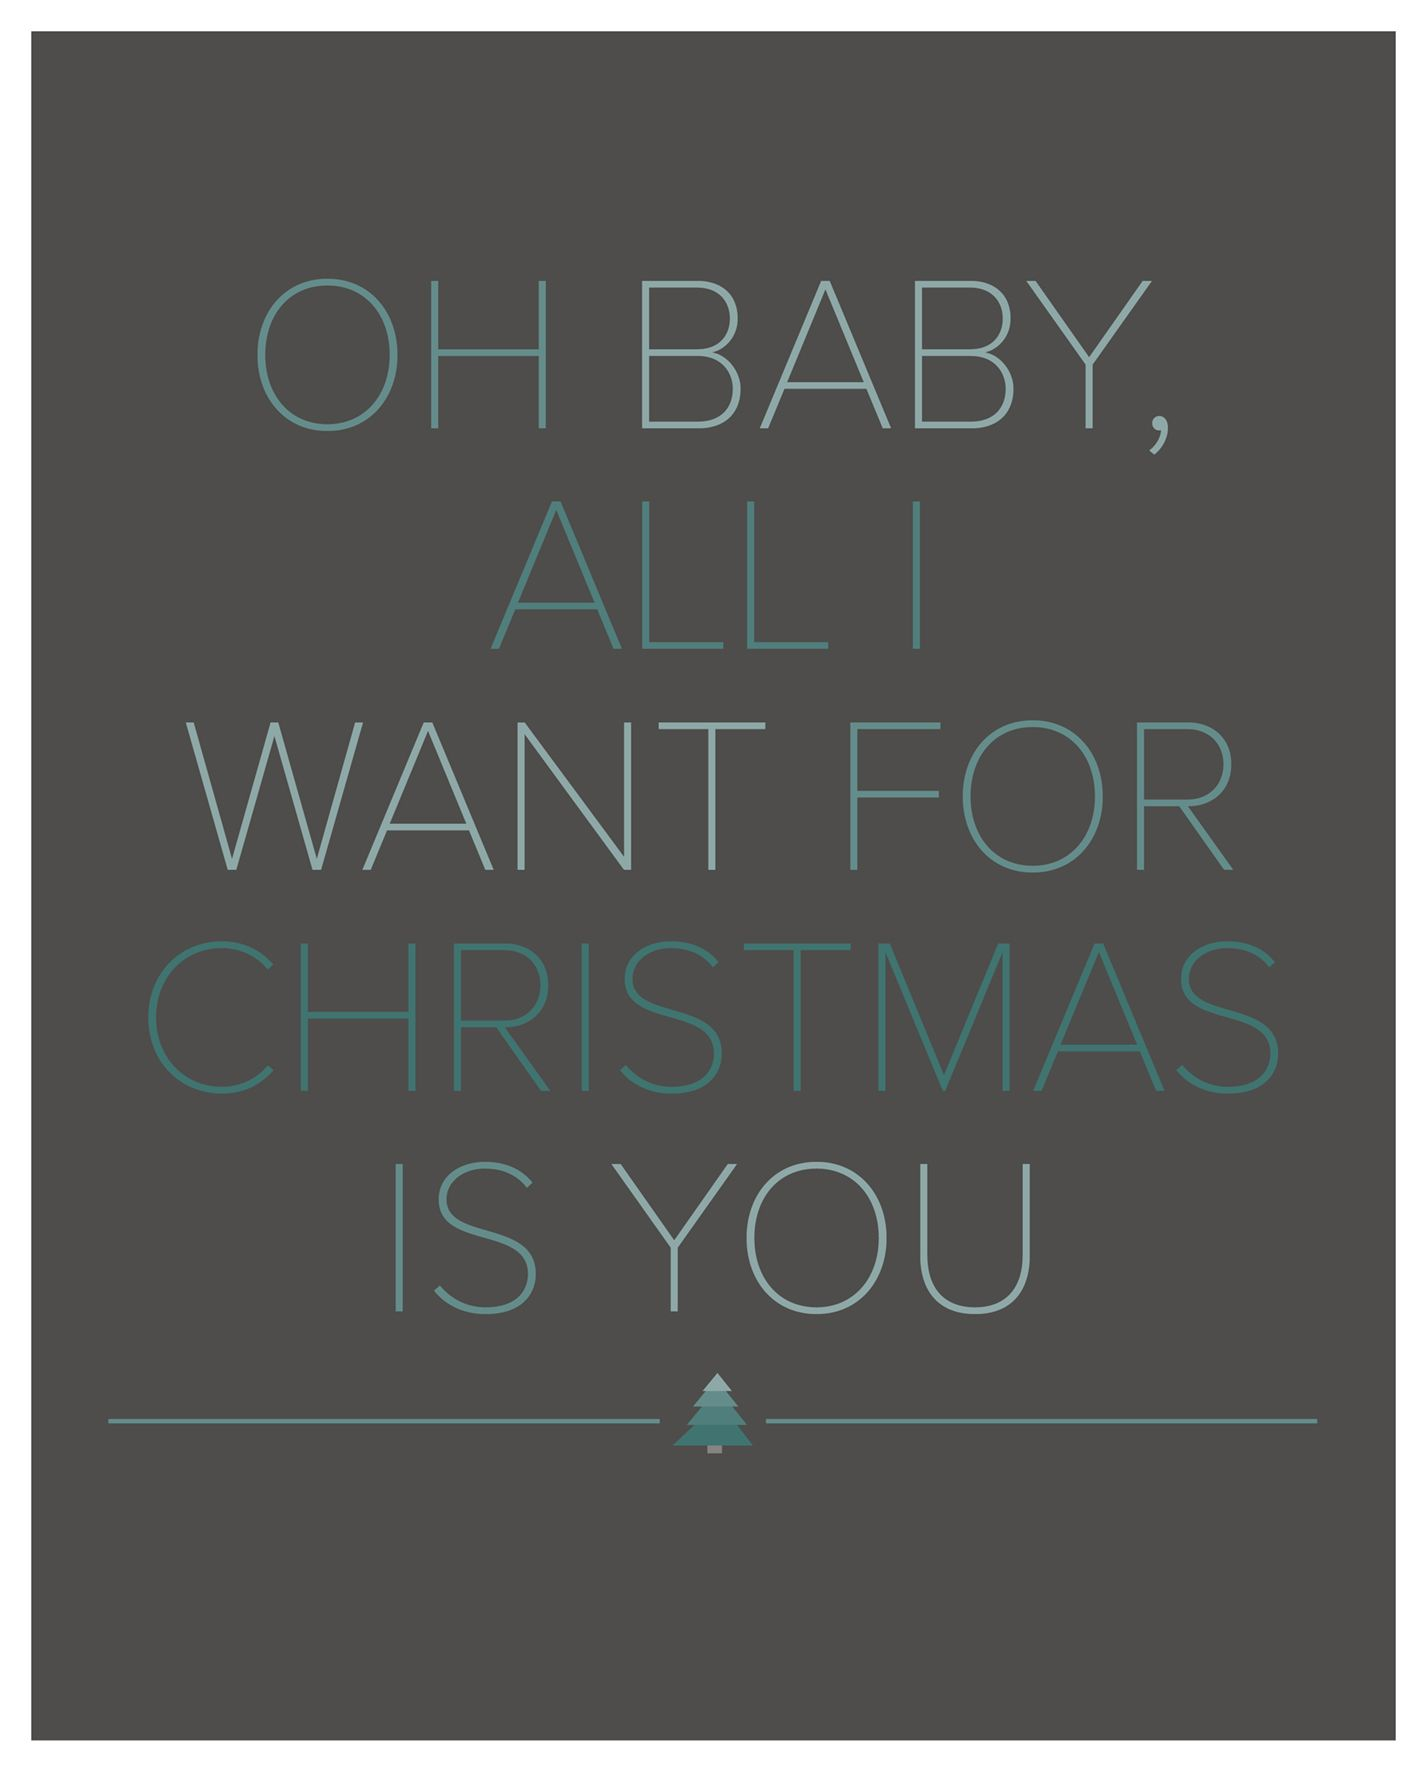 Happy Page Vtwonen 12 2015 Feestspecial All I Want Uit Mariah Carey All I Want For Christmas Is You 1994 Inspiratie Spreuken Teksten